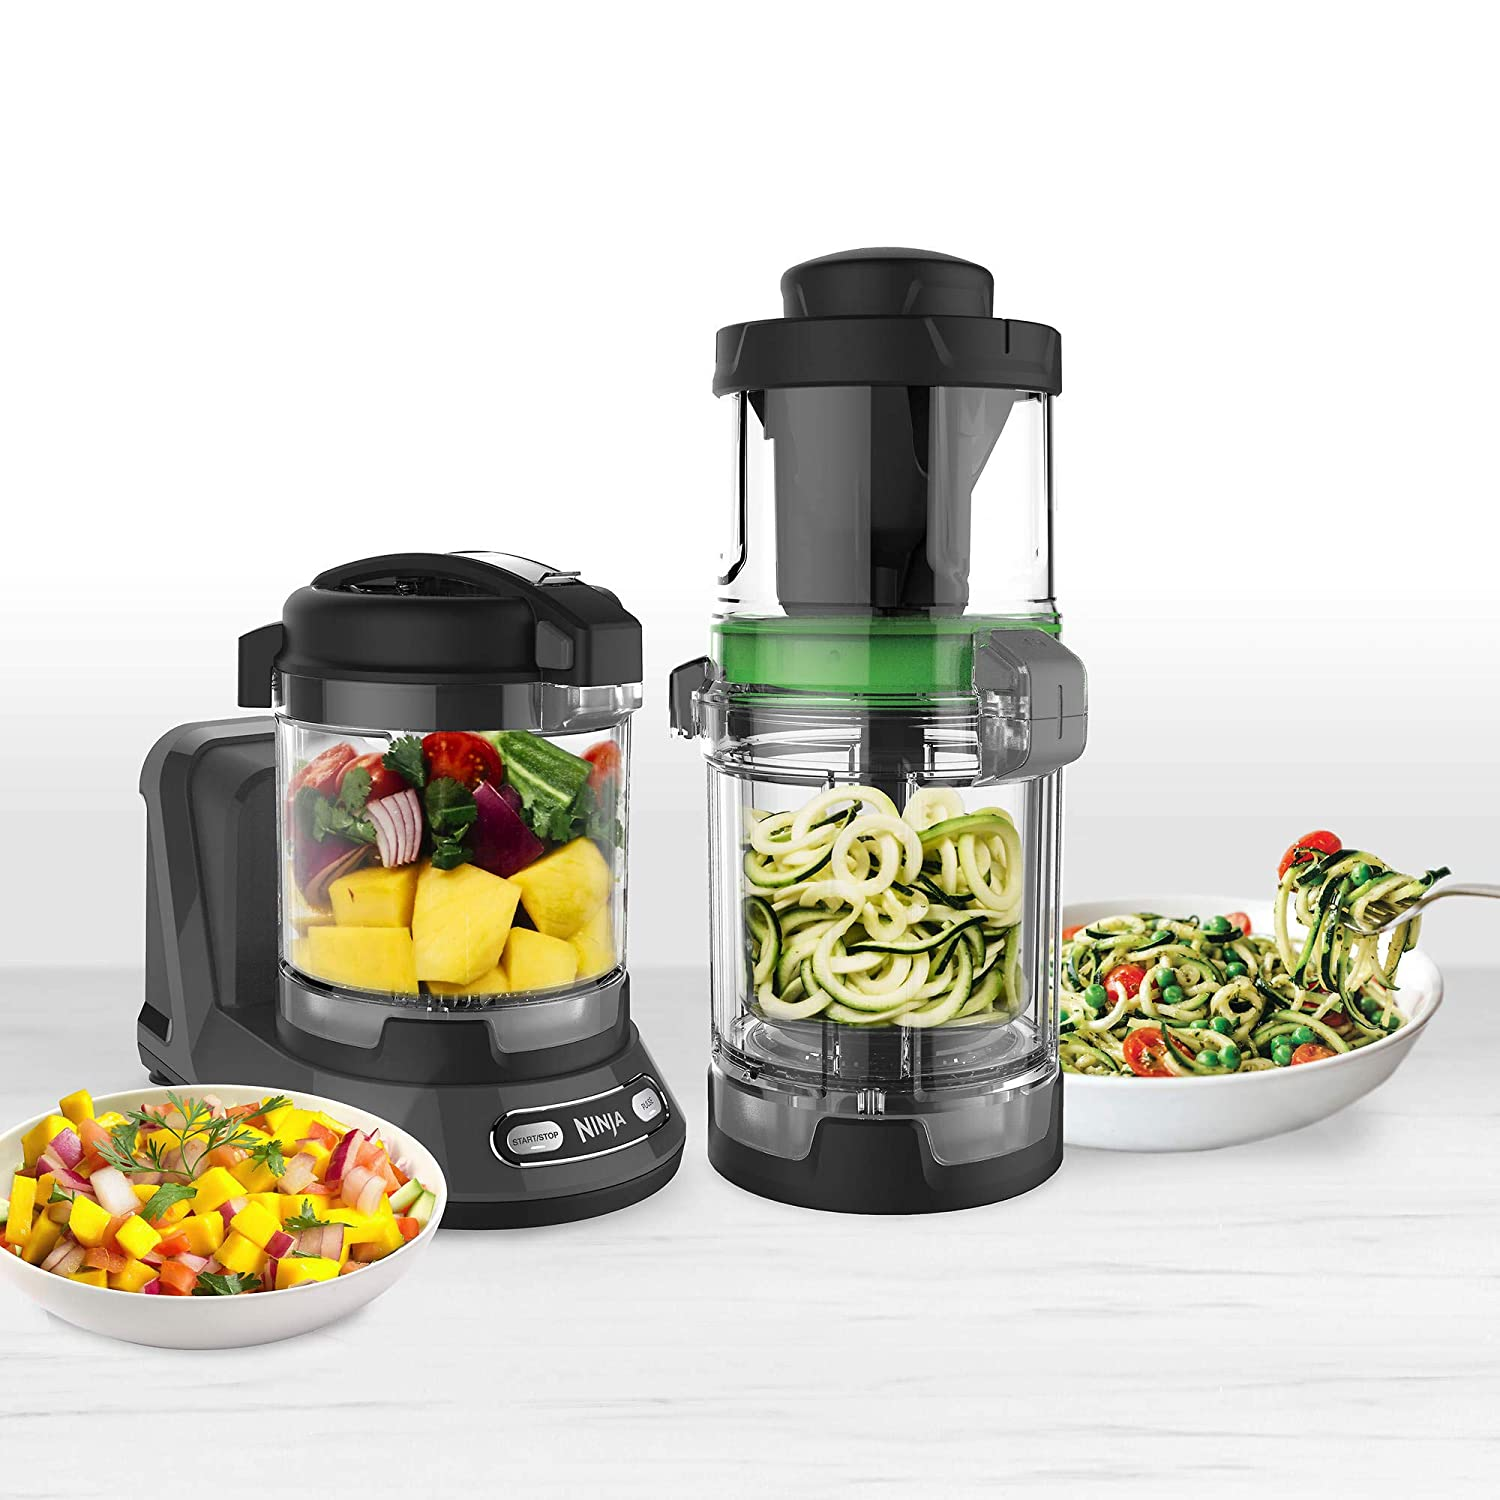 Ninja Precision Food Processor with Auto-Spiralizer 400W BPA-free - NN310A